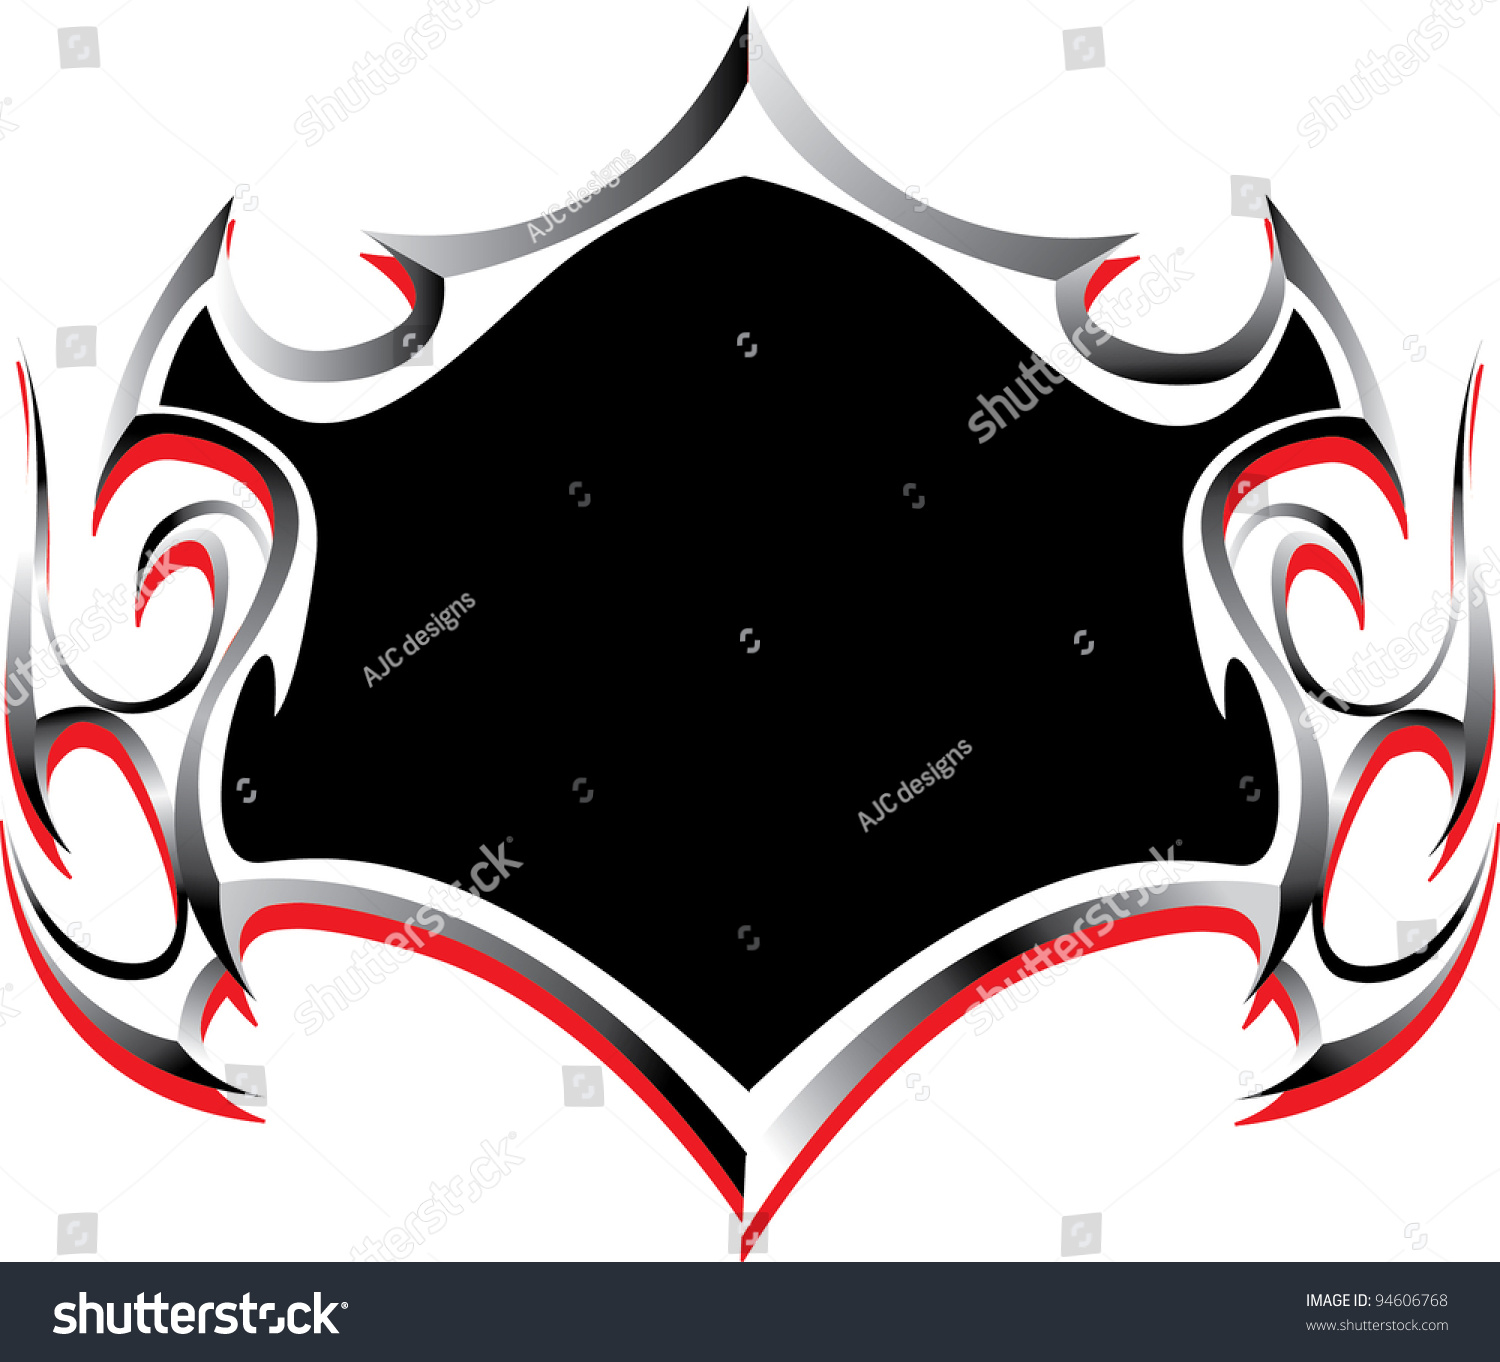 tribal shield stock vector 94606768 shutterstock. Black Bedroom Furniture Sets. Home Design Ideas